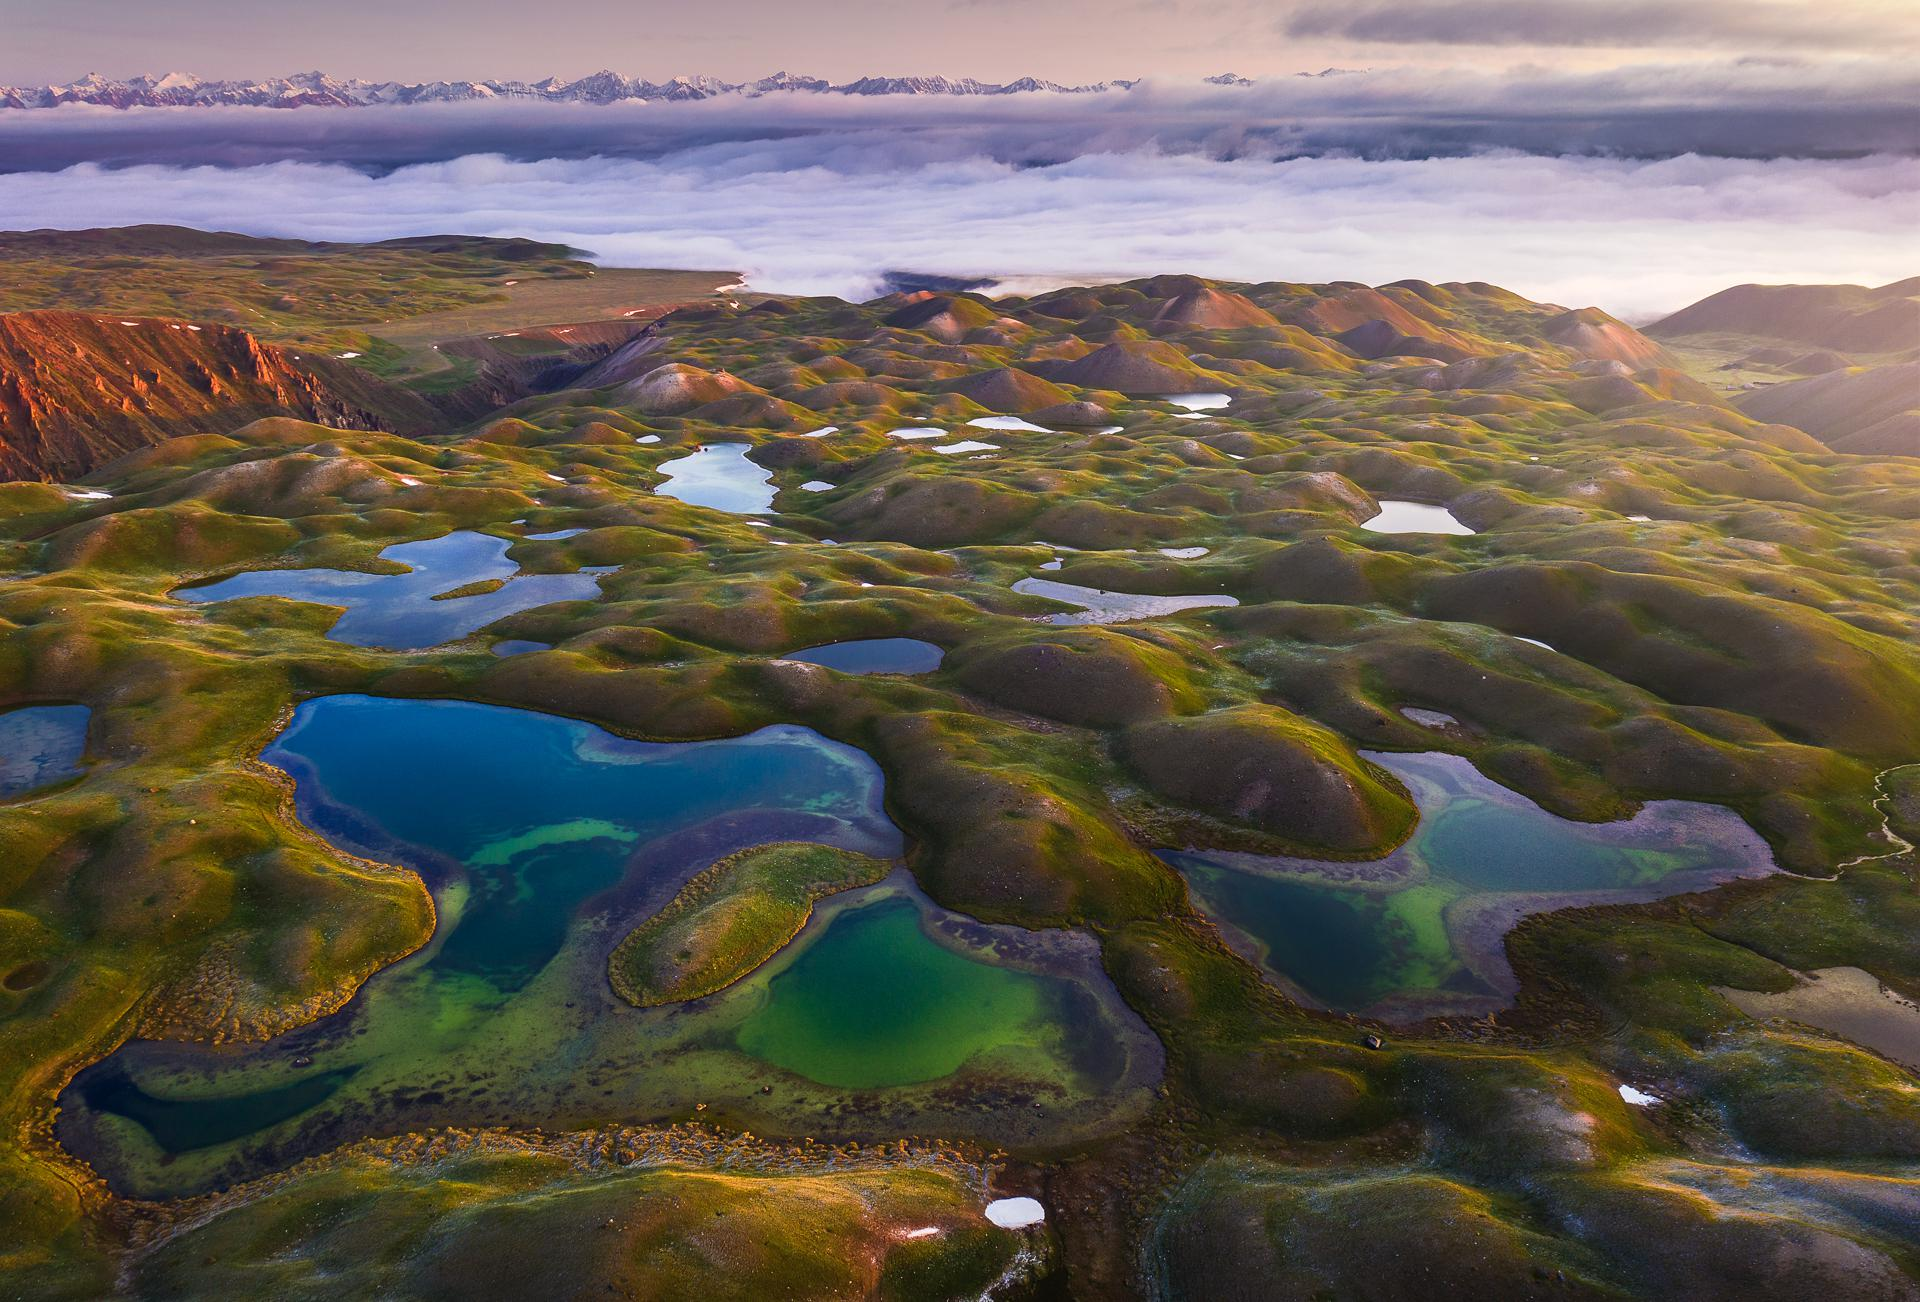 The surreal landscape of Kyrgyzstan seen from the sky